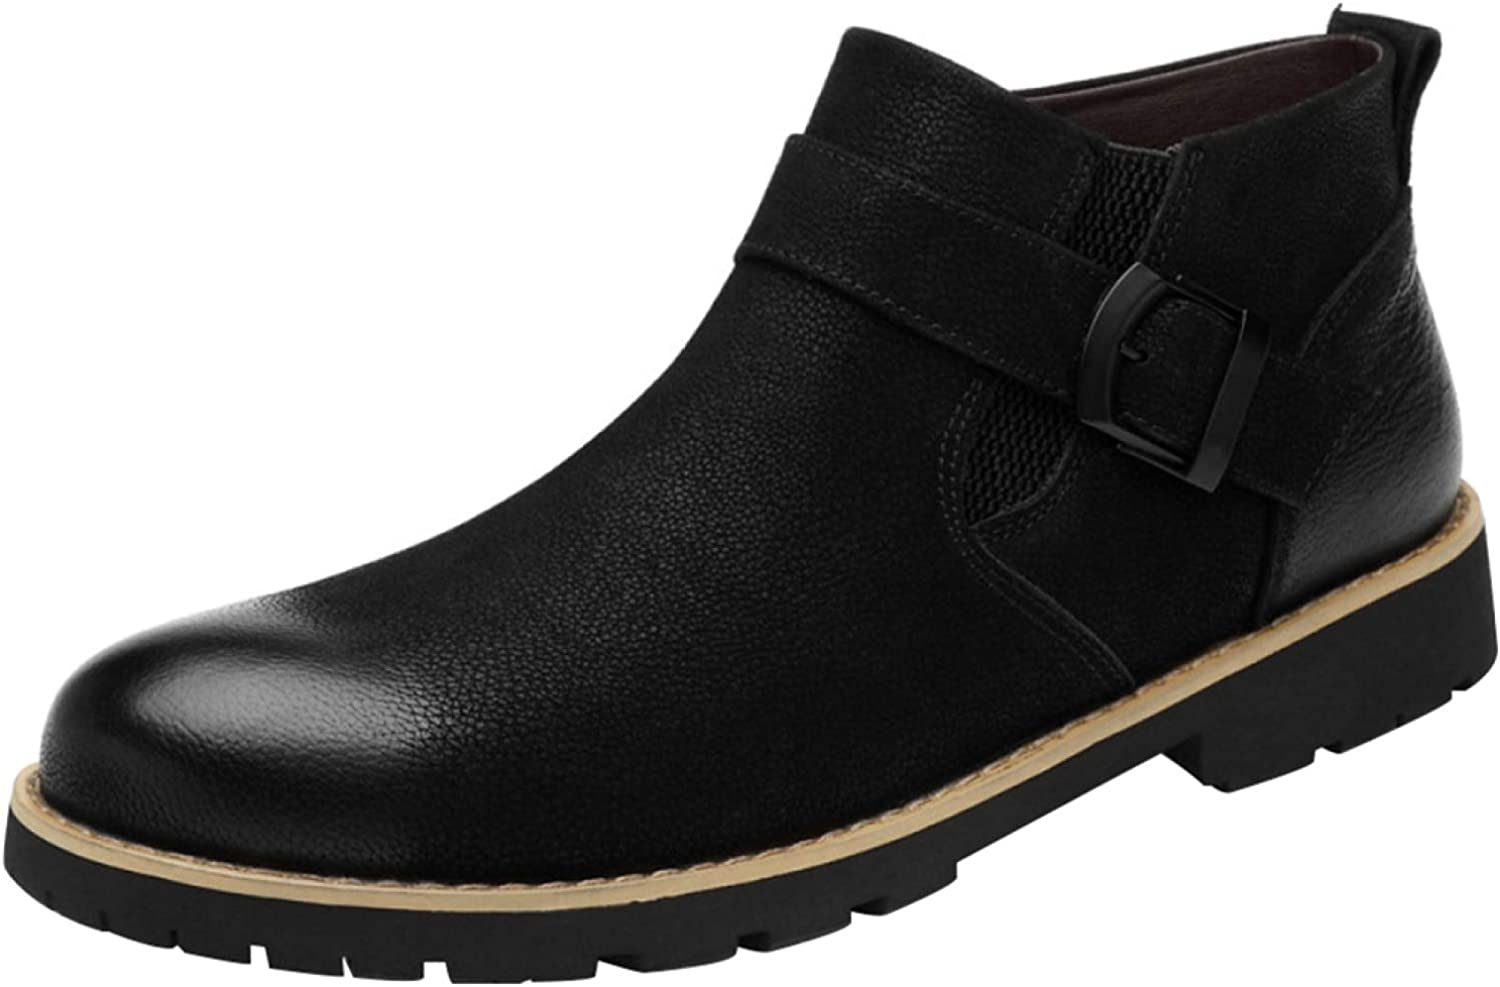 Men's Fashion Chelsea Ankle Boots Casual Leather Martin Boots